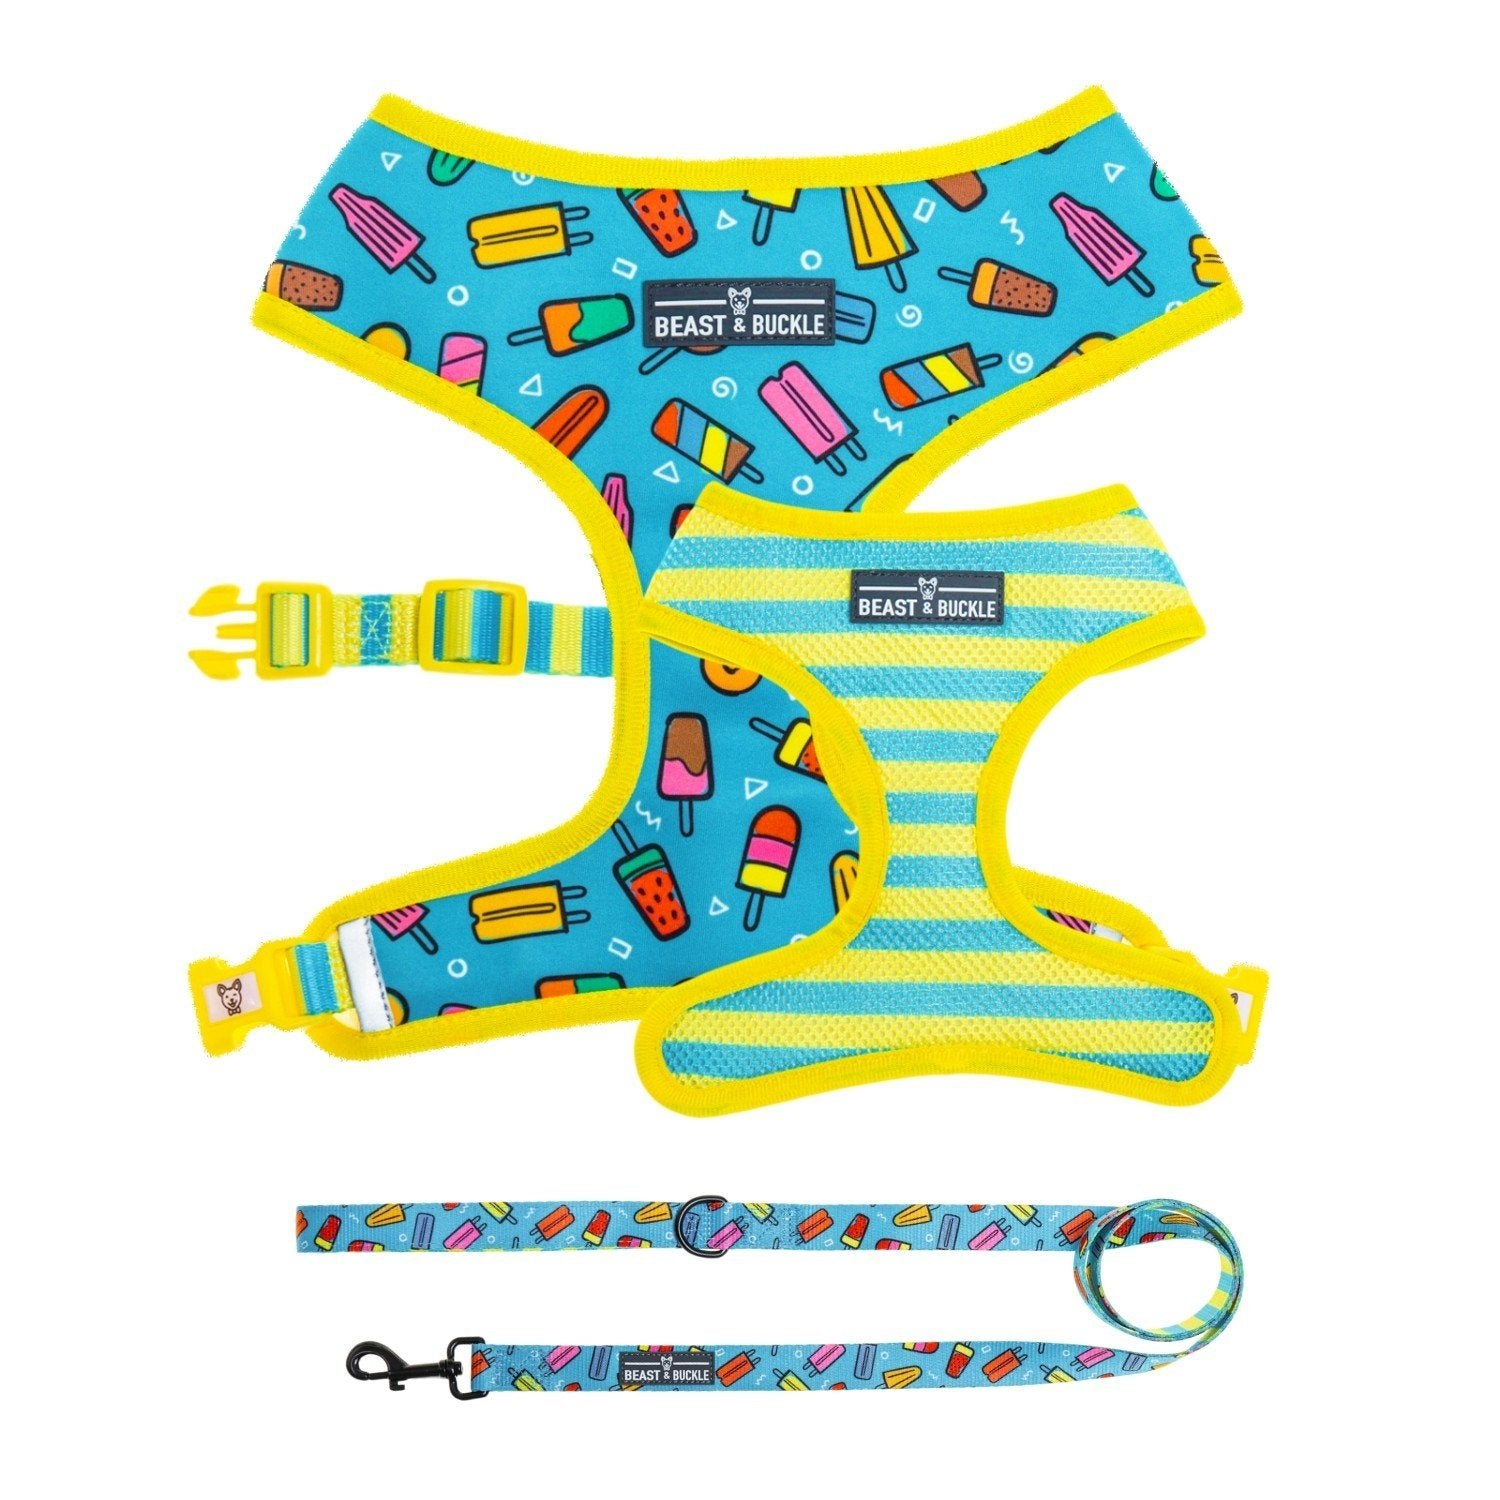 Popsicle Harness & Leash Set - Beast & Buckle